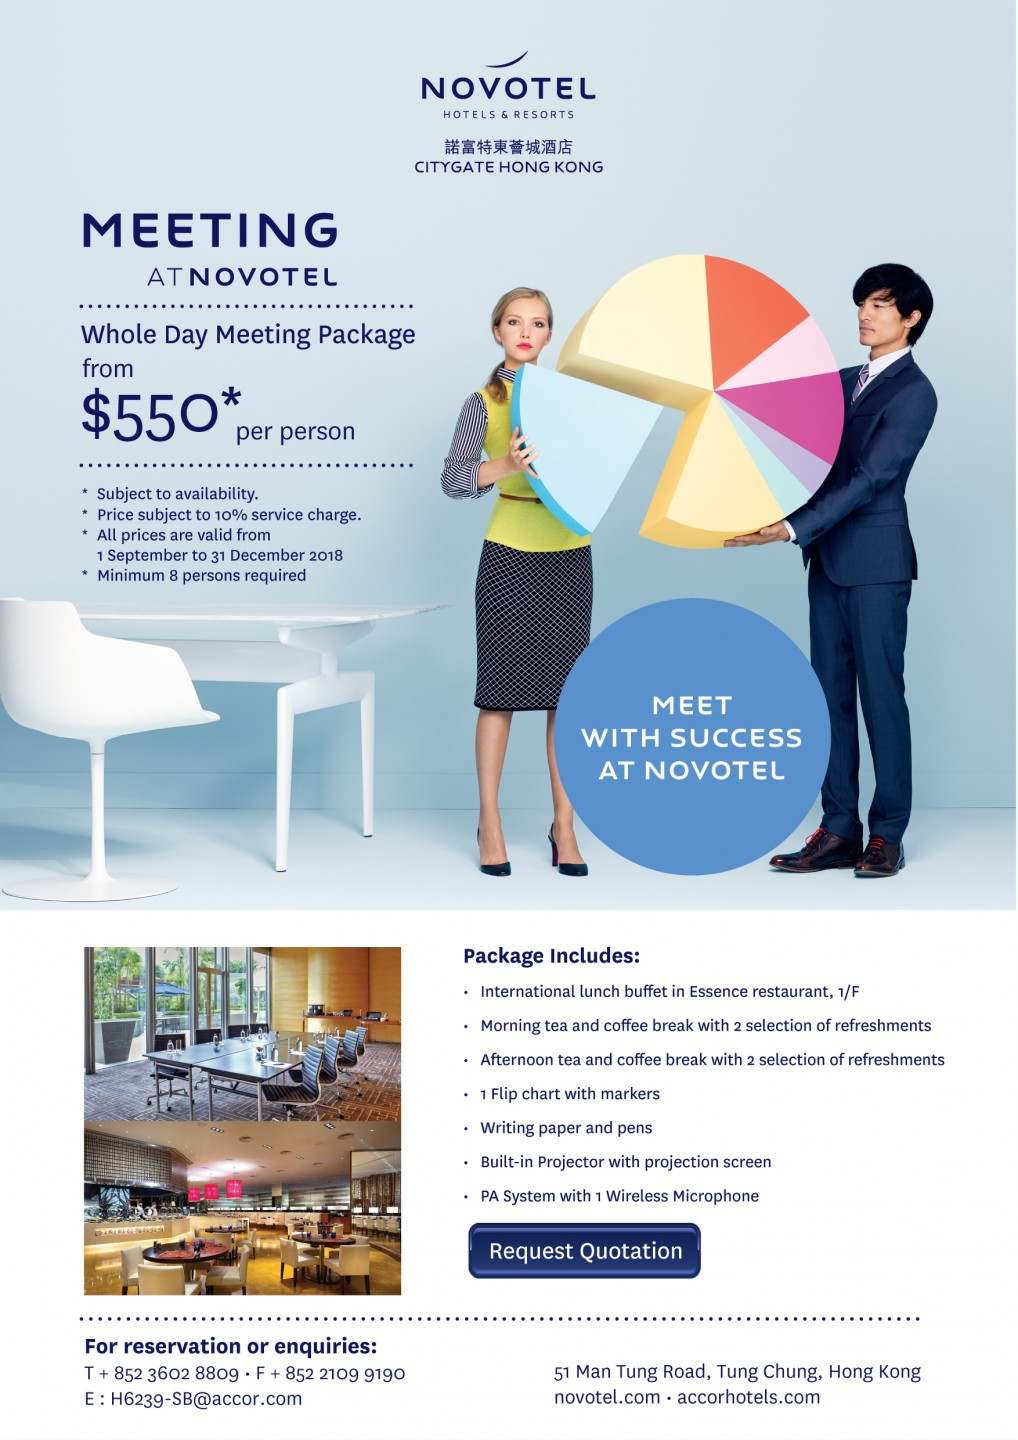 $550 Full Day Meeting Package at Novotel Citygate Hong Kong in Tung Chung